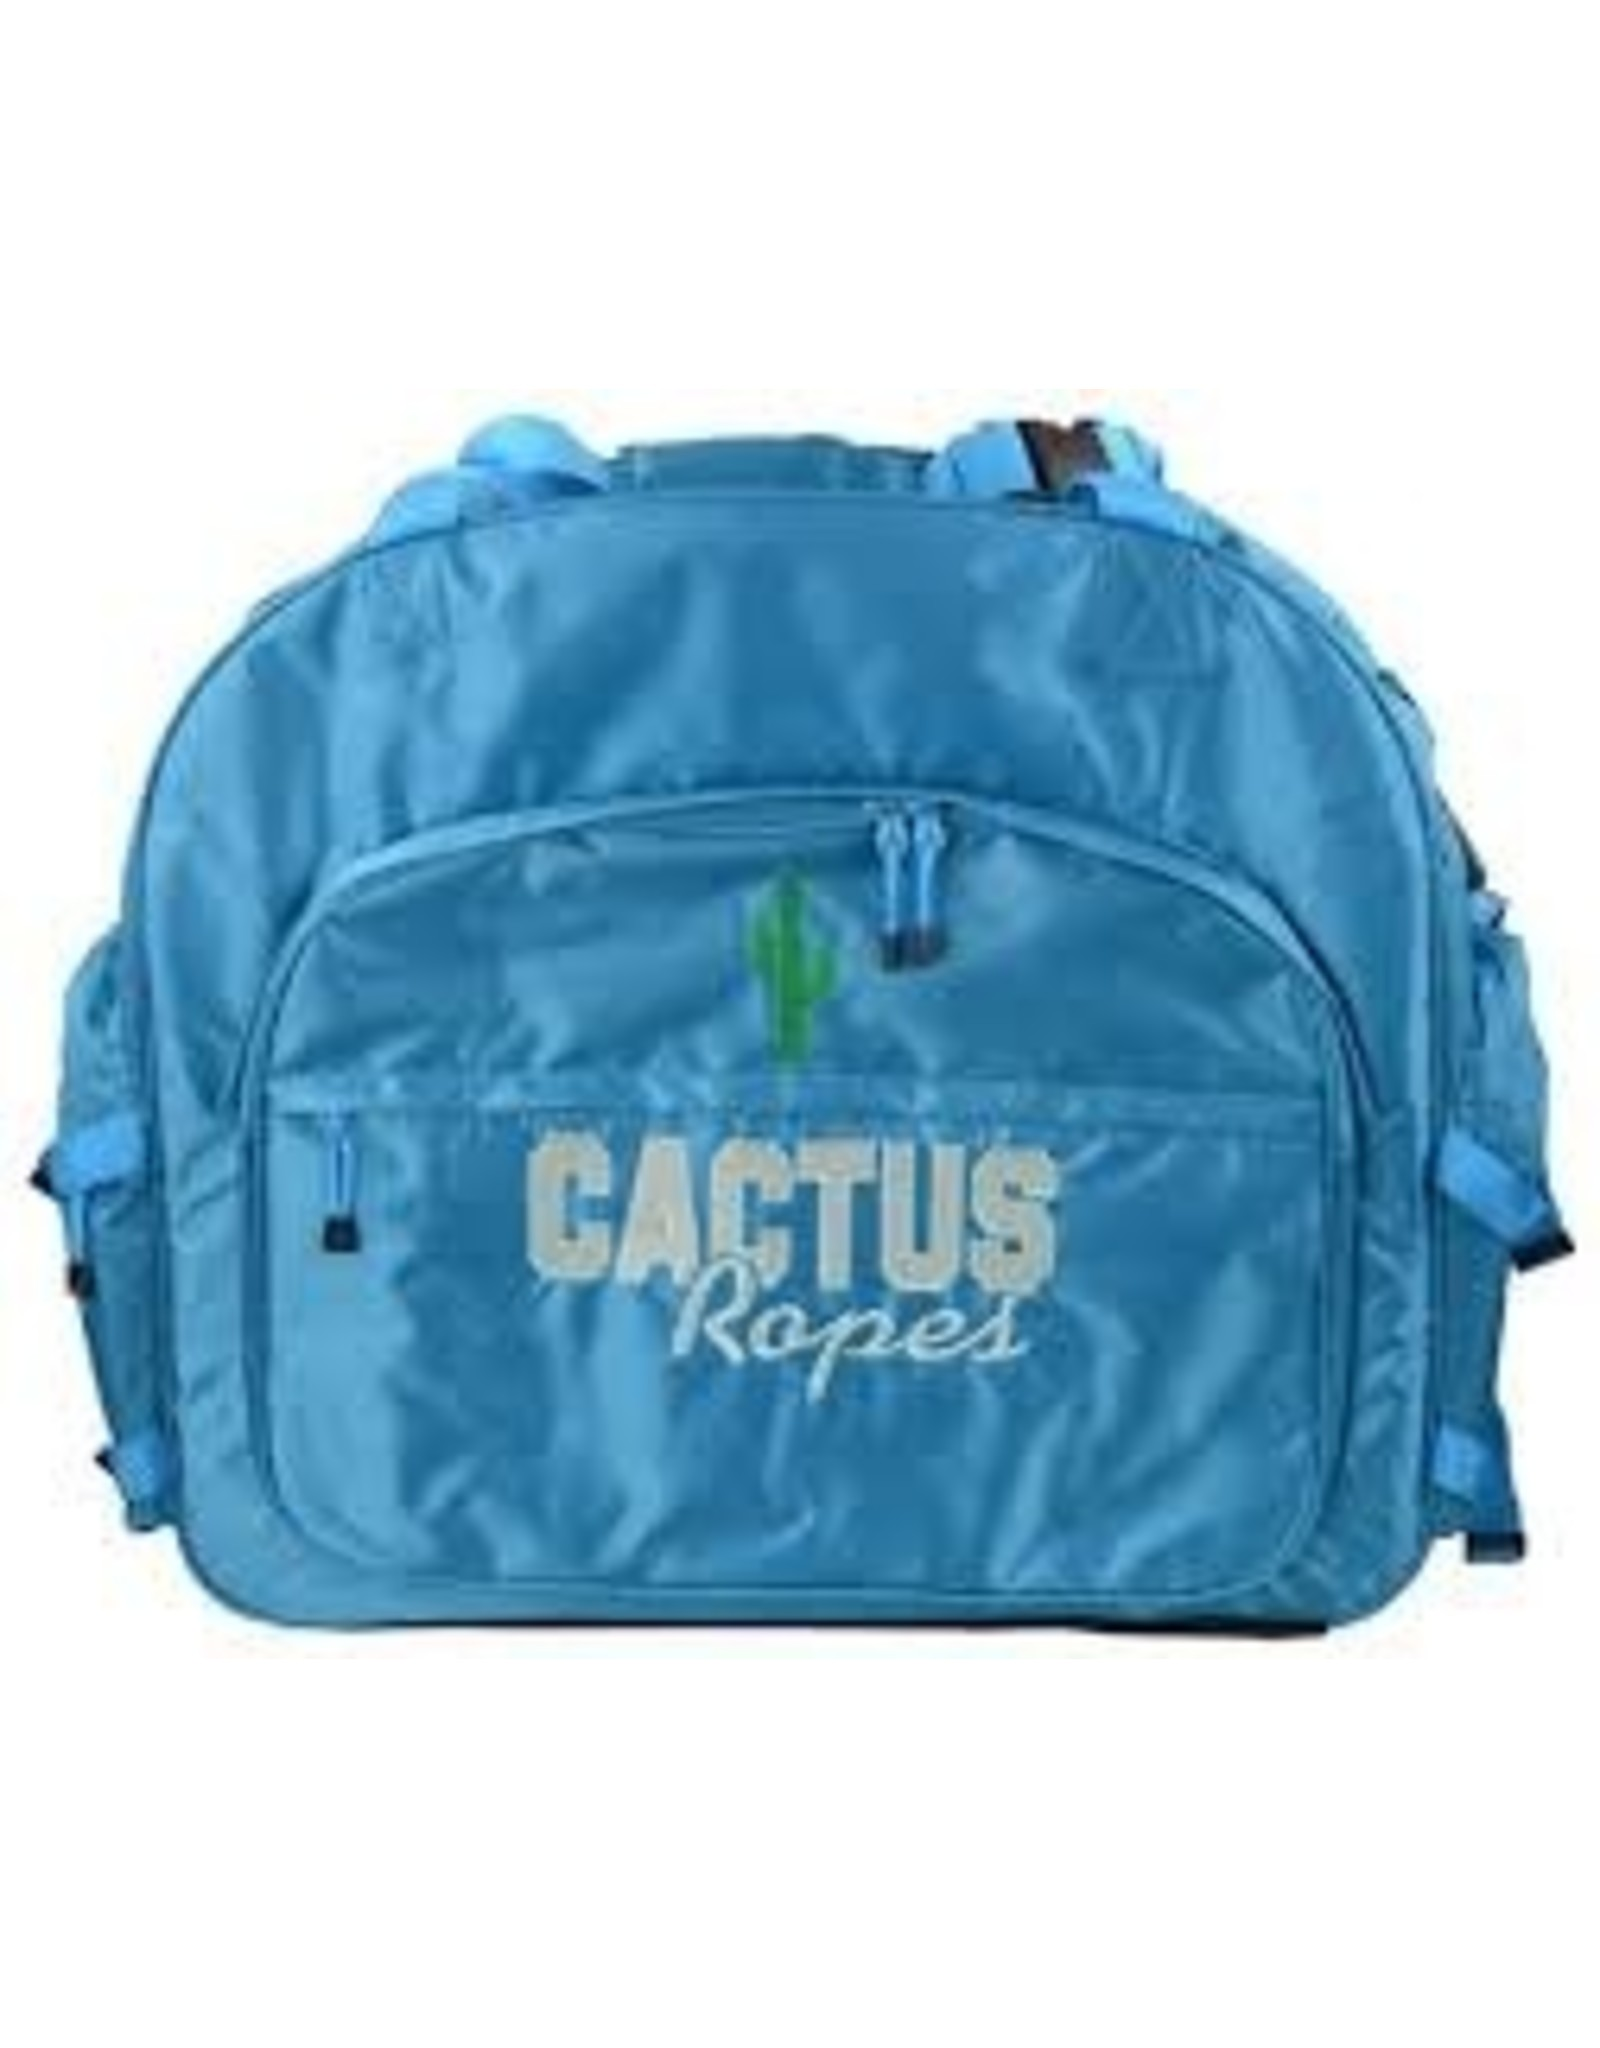 CACTUS - Excursion Rope Bag - Blue CR-BAGEXCUR